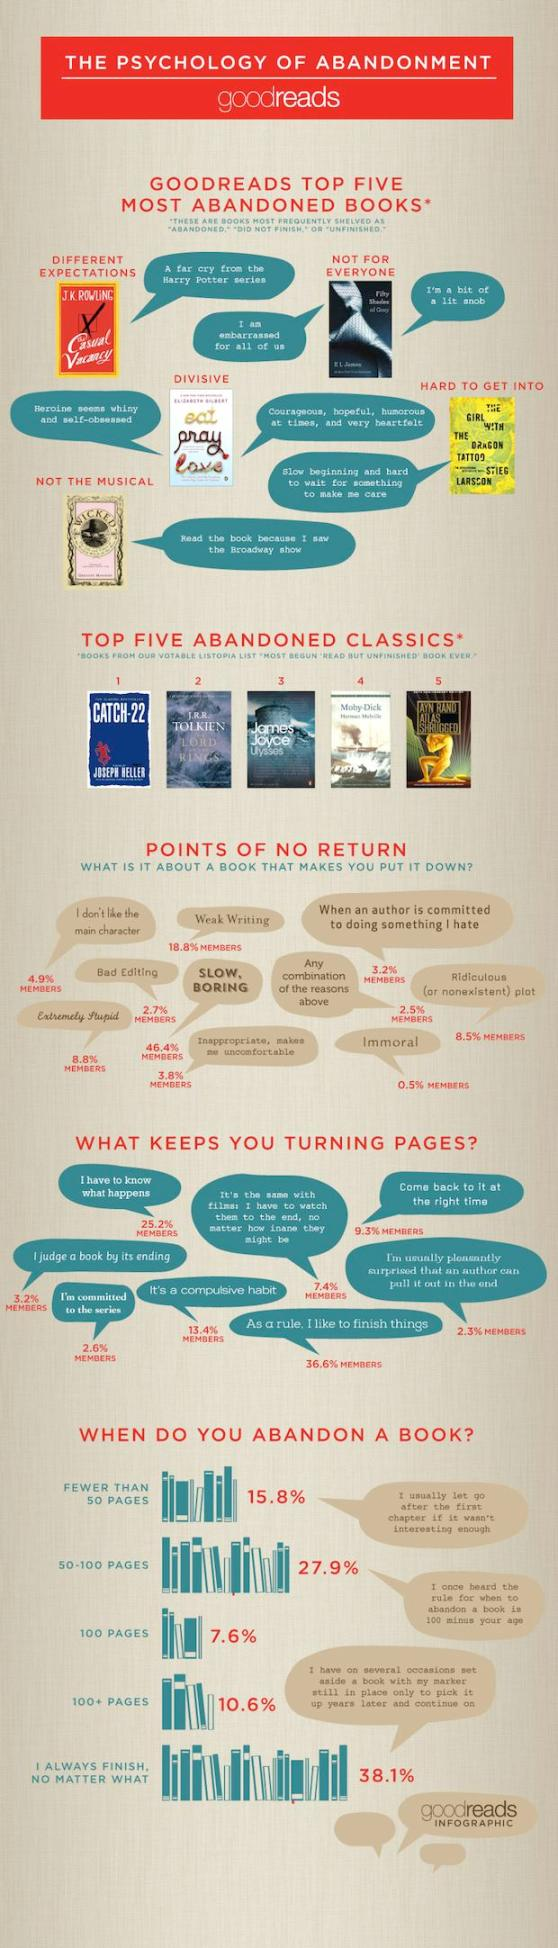 Infographic: What Makes You Put Down a Book?  AAP Infographic